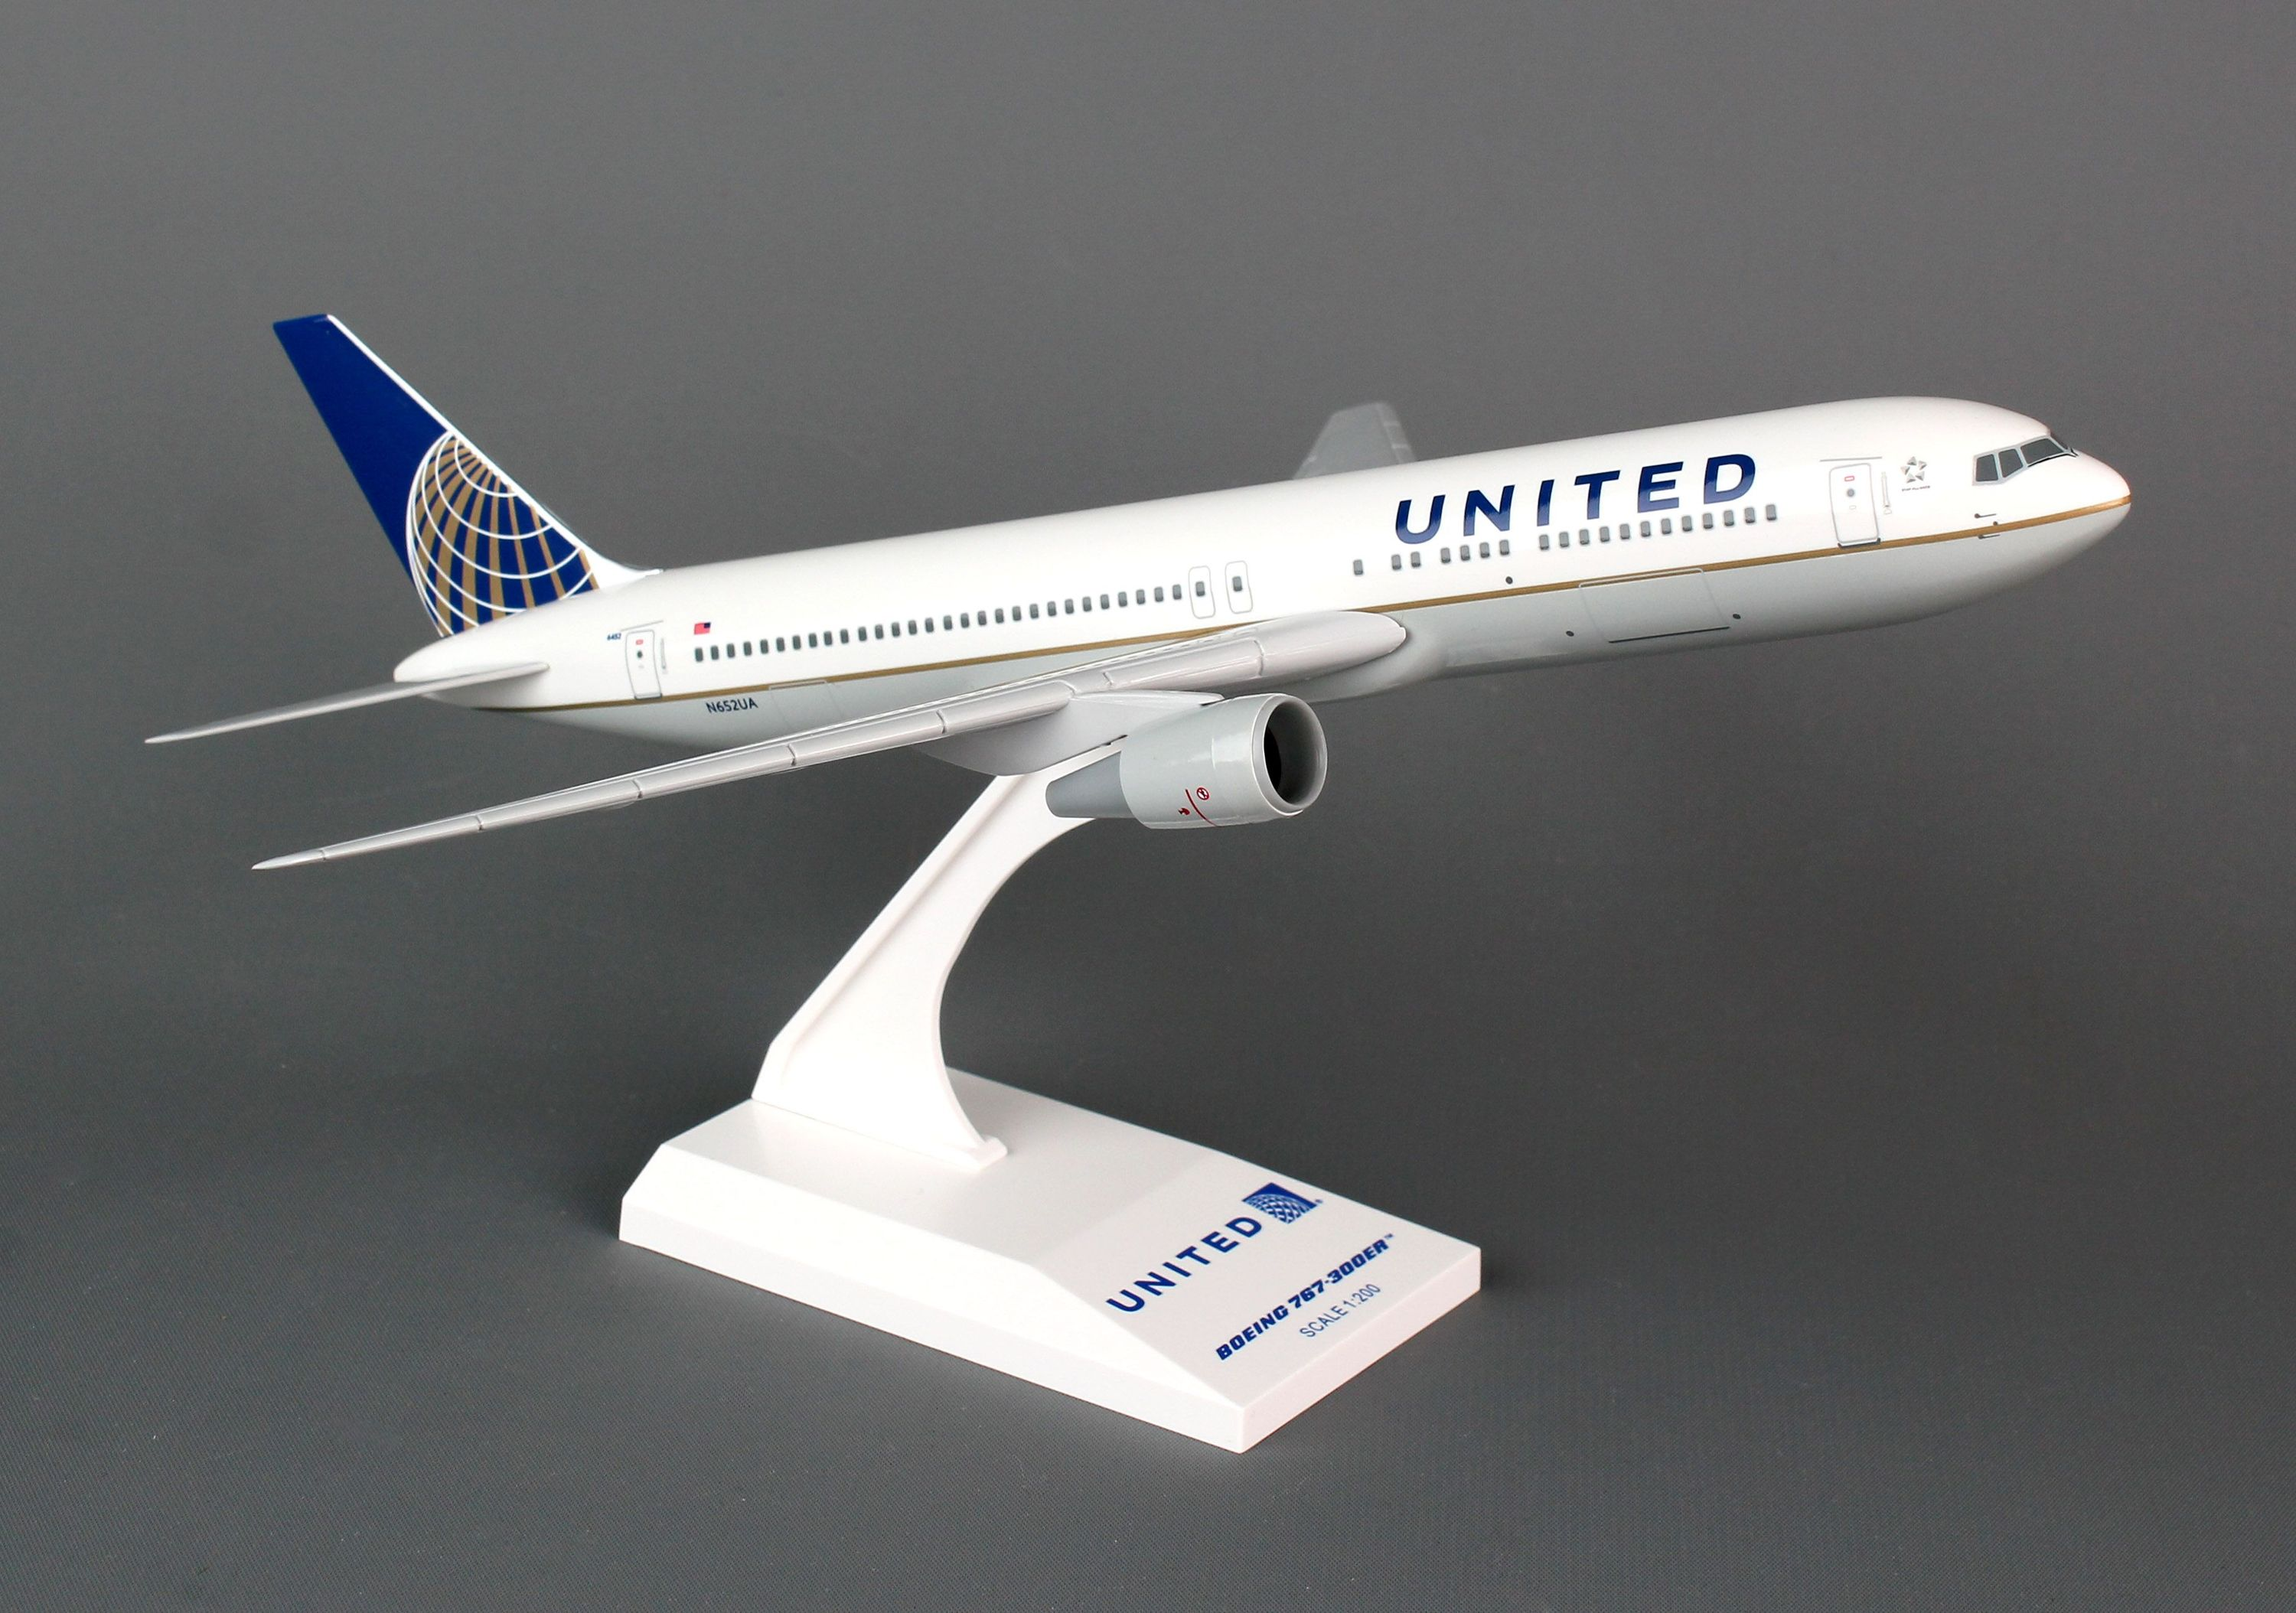 SkyMarks Flugzeugmodell United Airlines Boeing 767-300 Maßstab 1:200